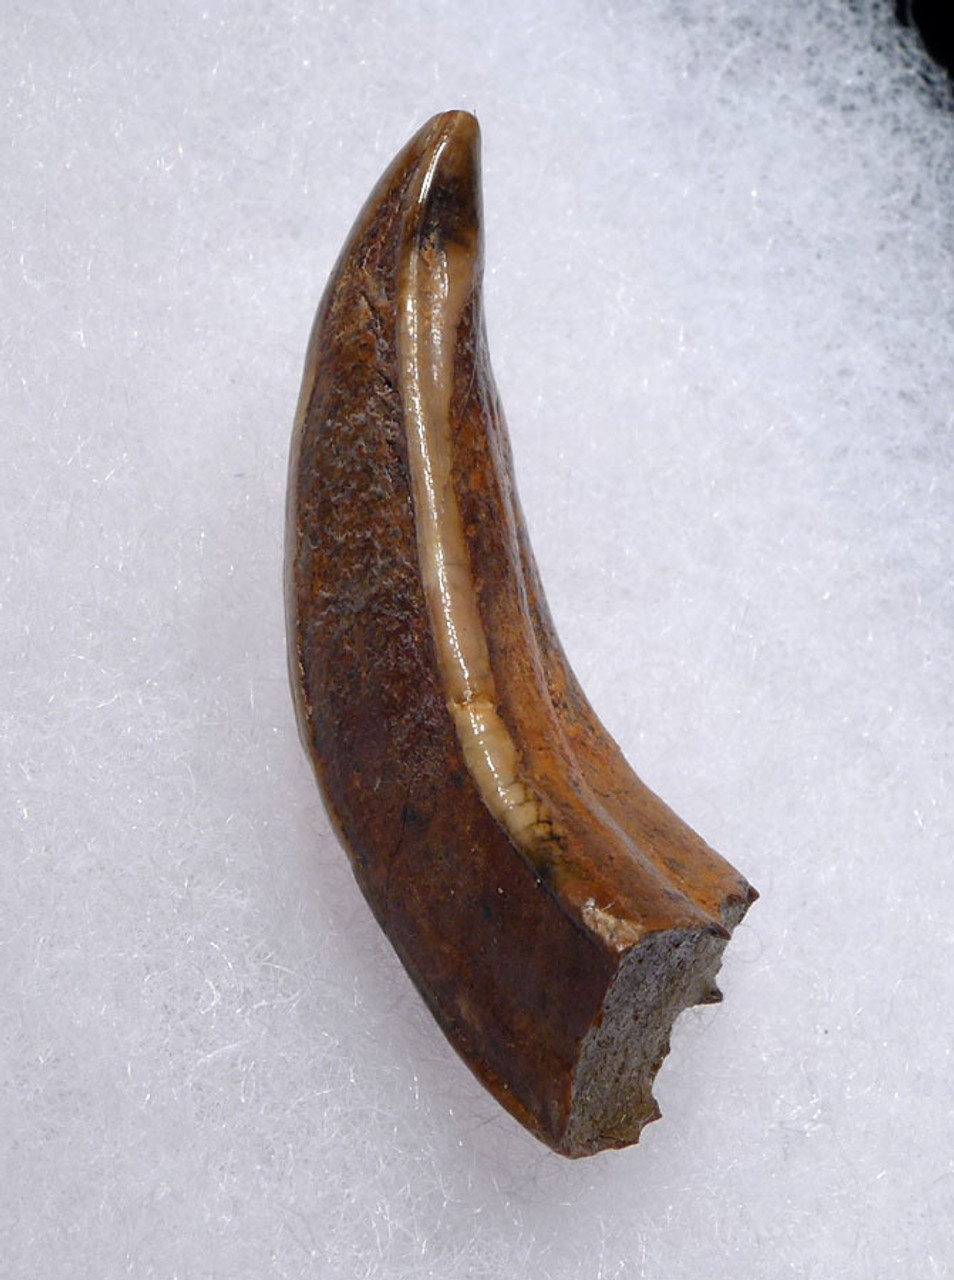 FOSSIL UPPER TUSK FROM A EUROPEAN ICE AGE WILD BOAR  *LMX245